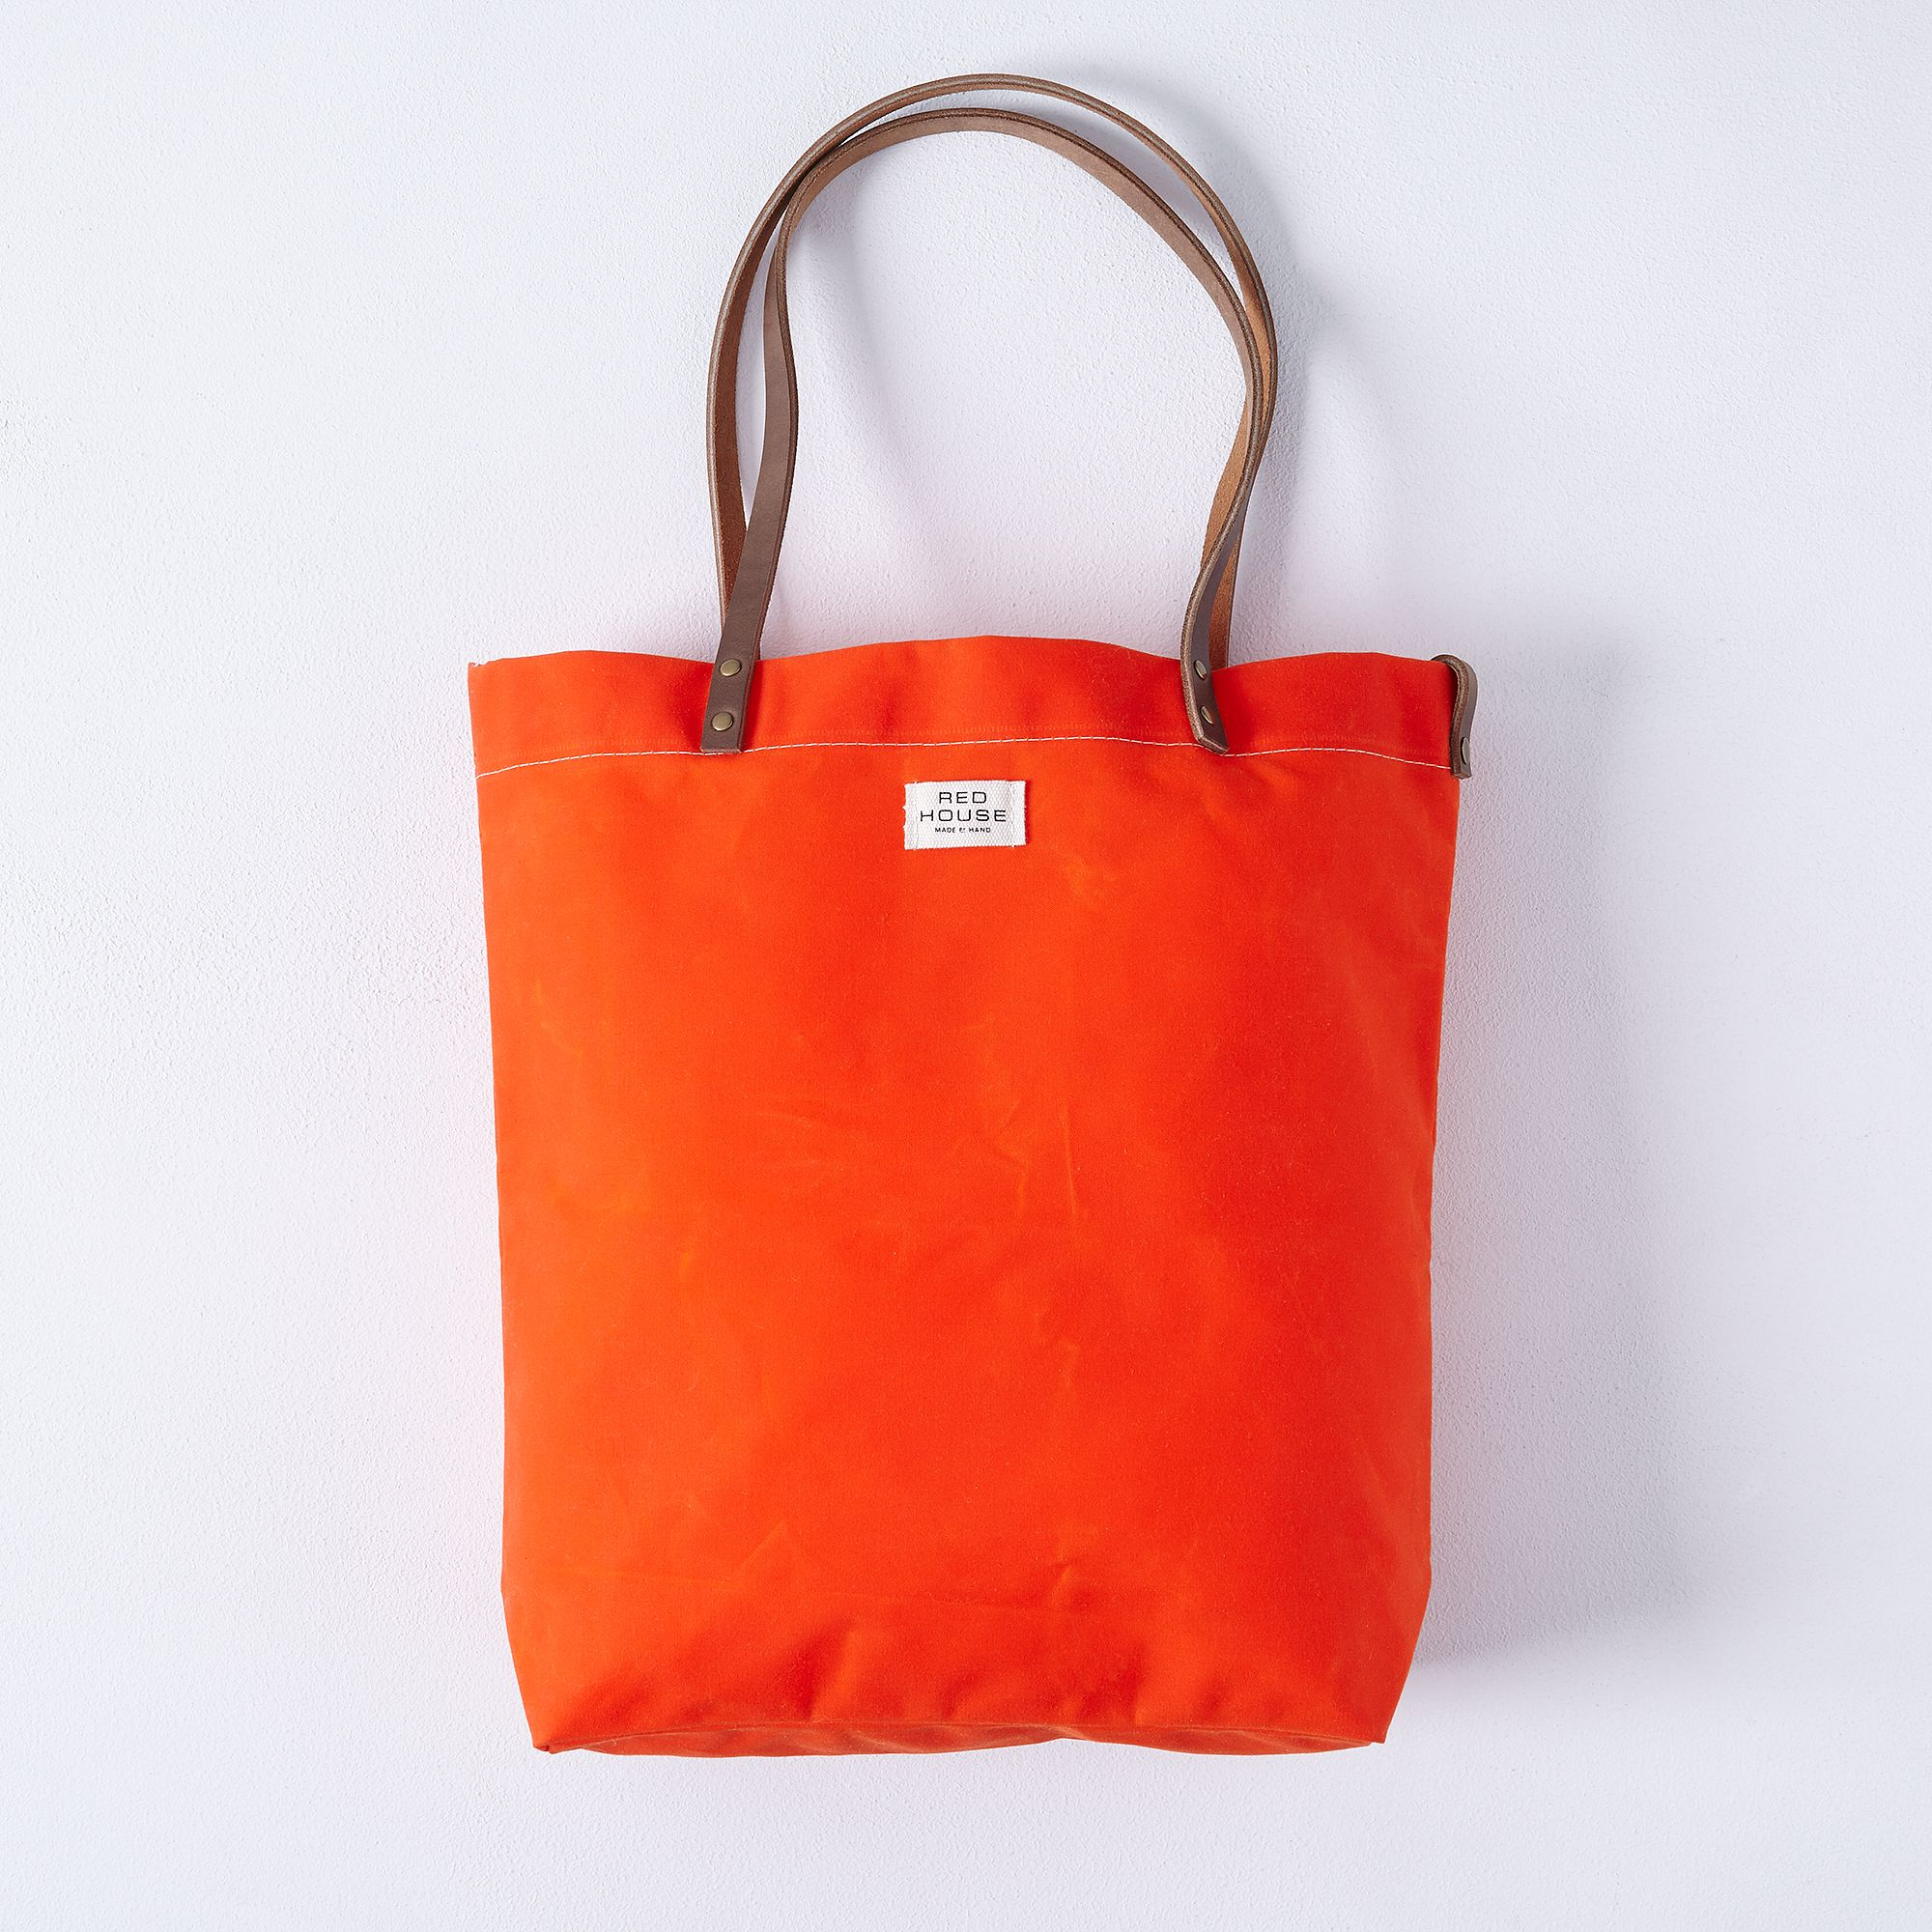 A30d3869 182a 47de 86c2 d3cecb2e63a0  2016 0701 red house tote bag orange silo rocky luten 006